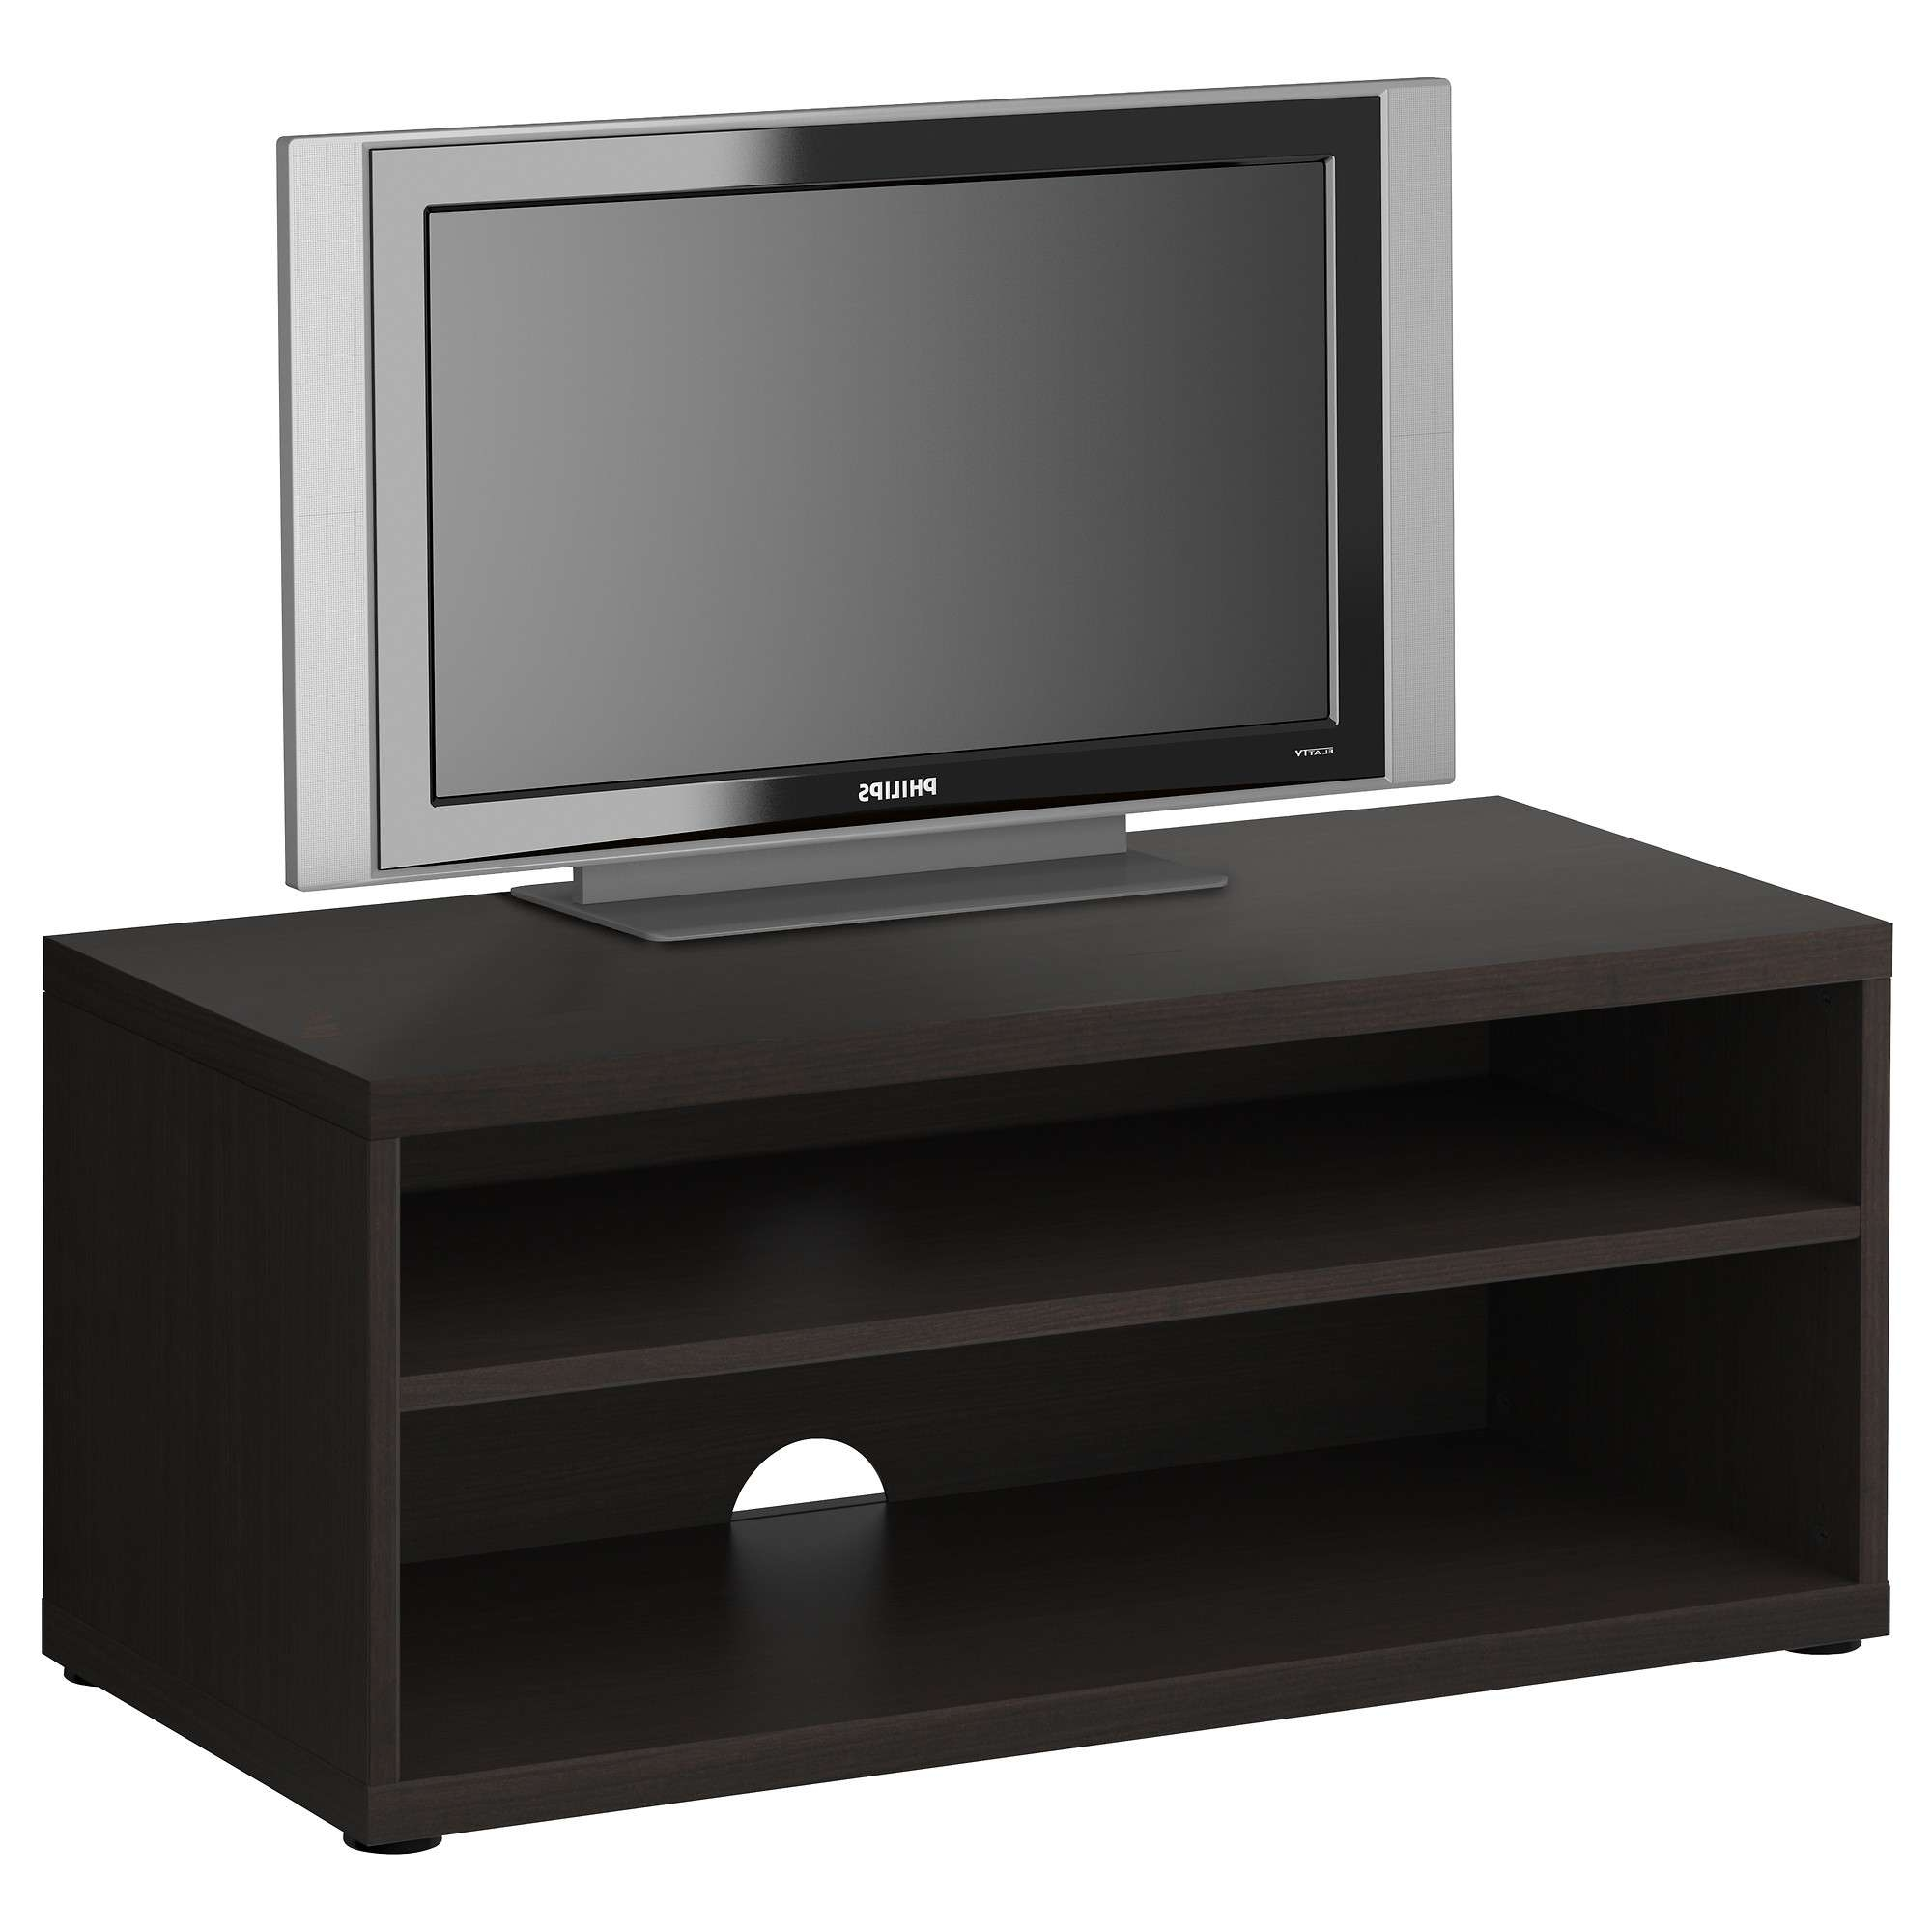 Large Tv Stands & Entertainment Centers – Ikea Inside Black Tv Stands With Drawers (View 5 of 15)